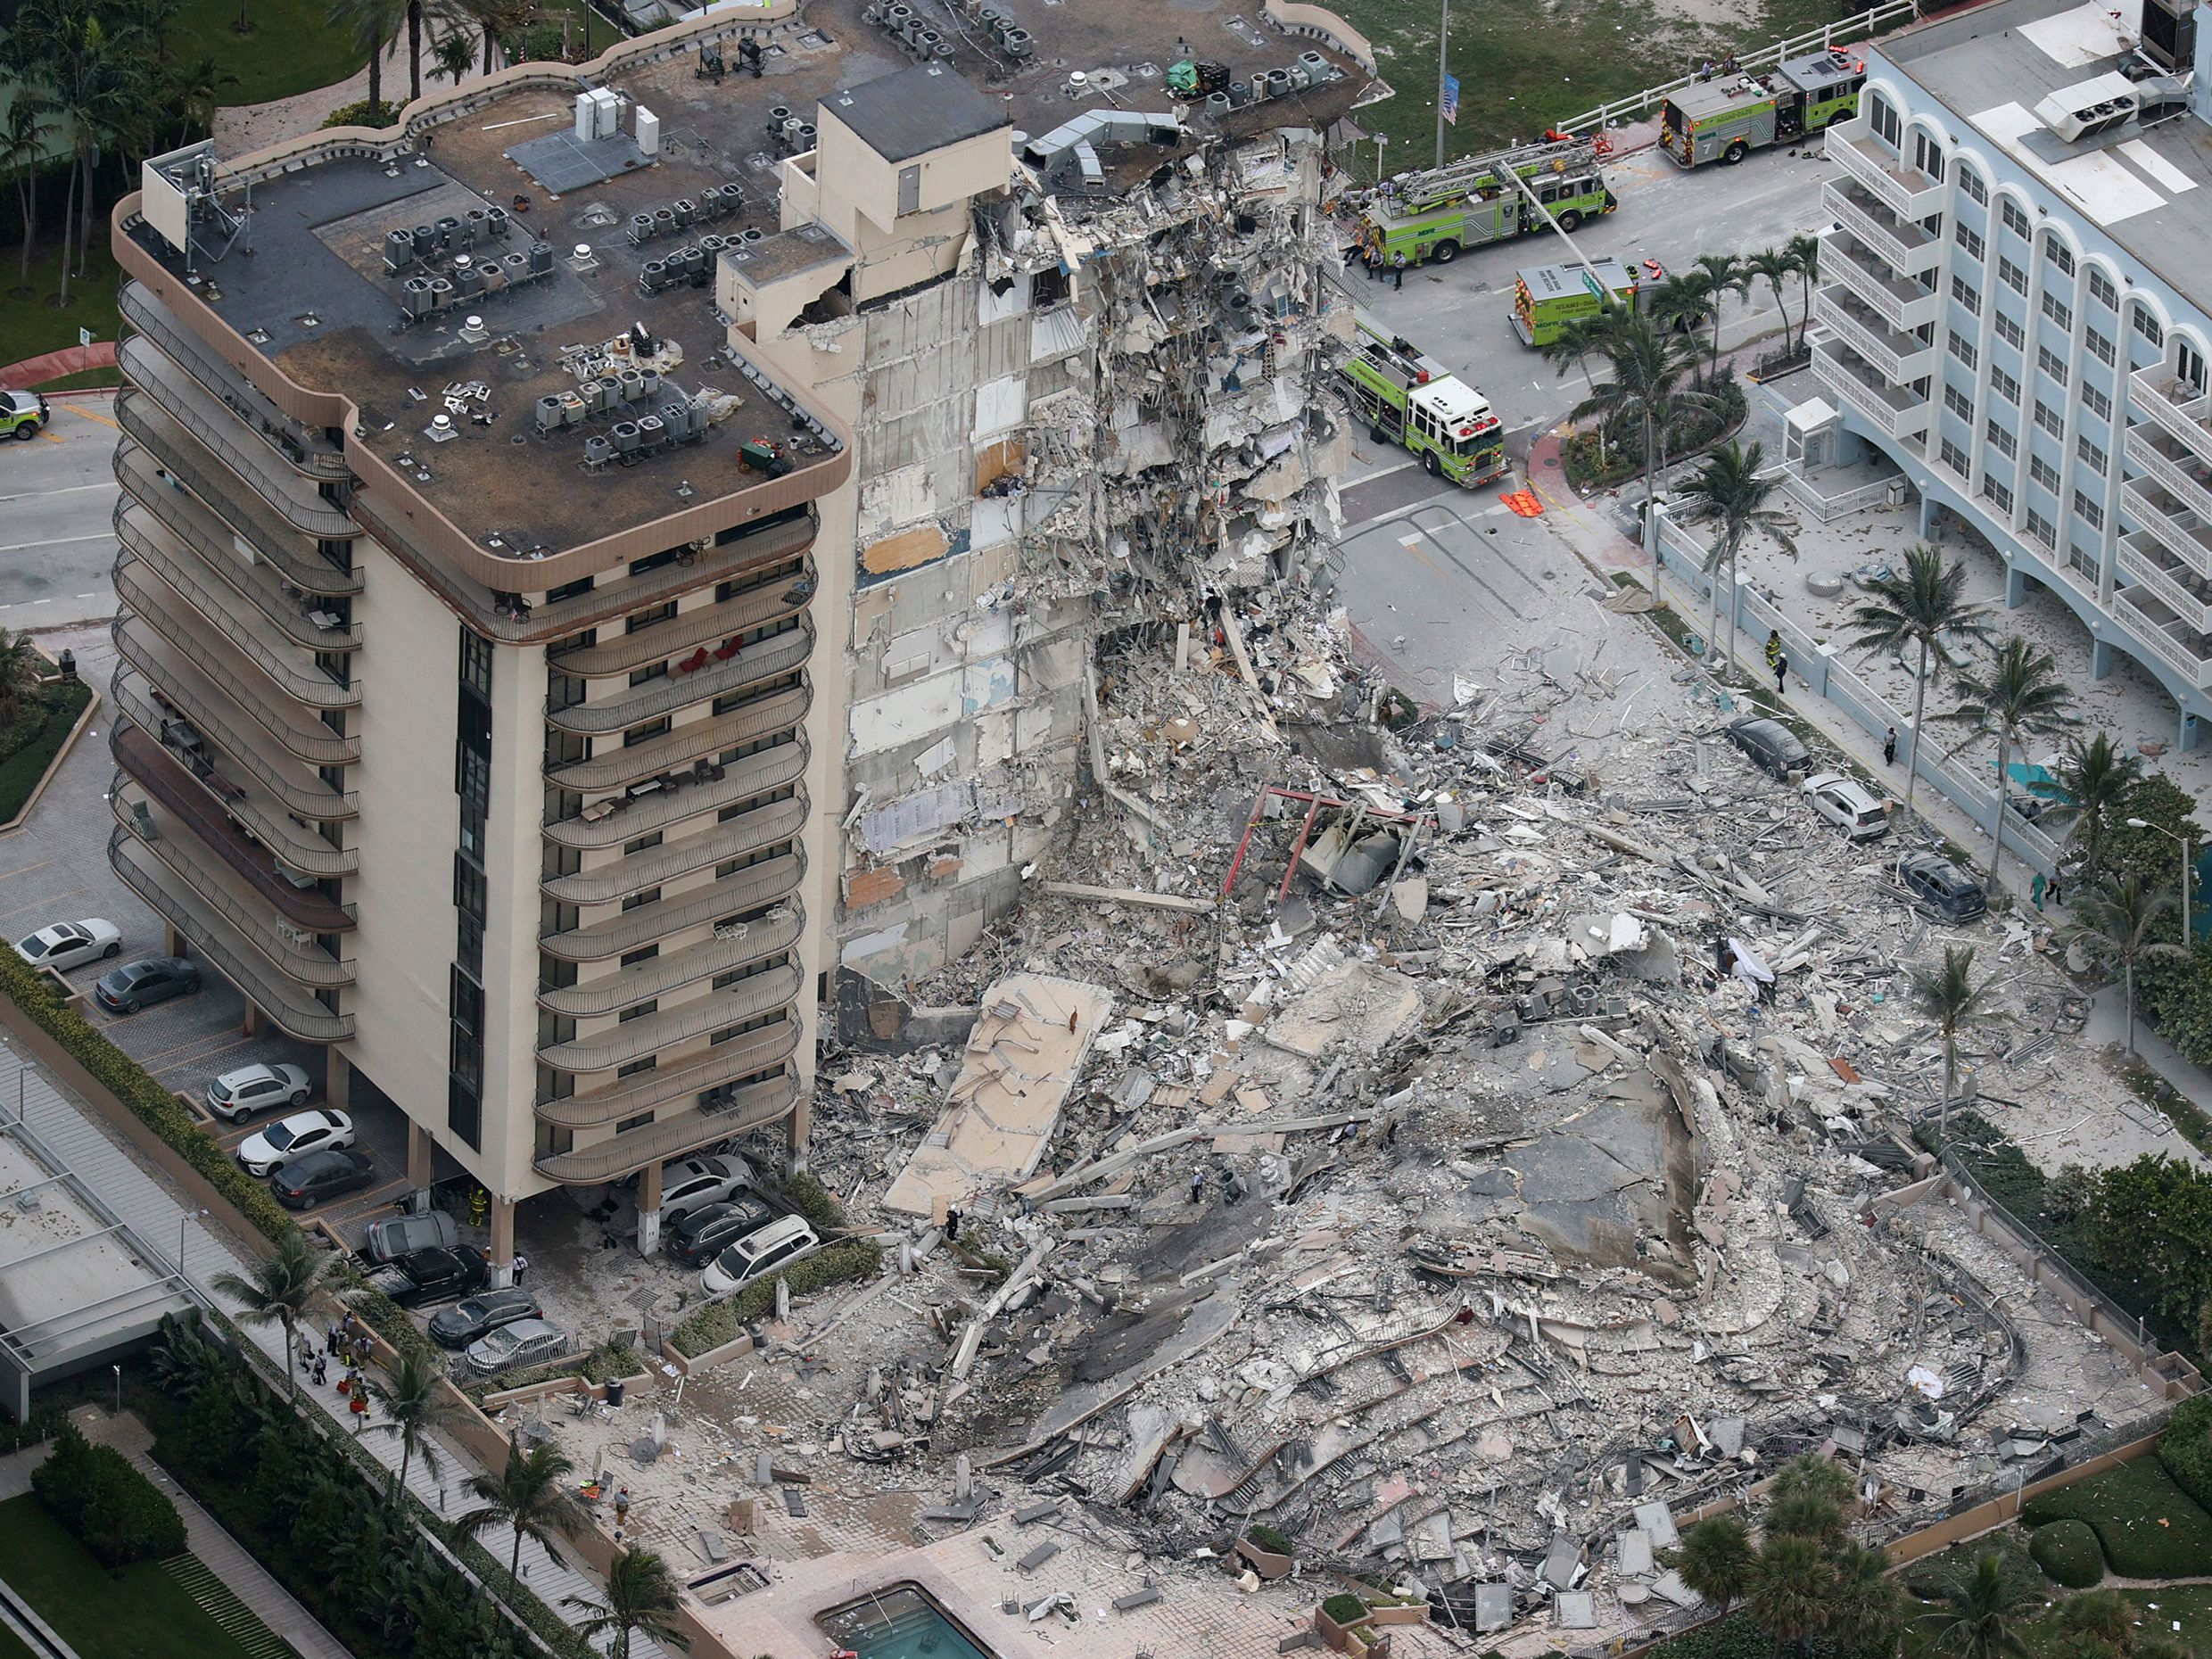 Search and rescue personnel work in the rubble of the 12-story condo tower that crumbled to the ground during a partially collapse of the building on June 24, 2021 in Surfside, Florida.